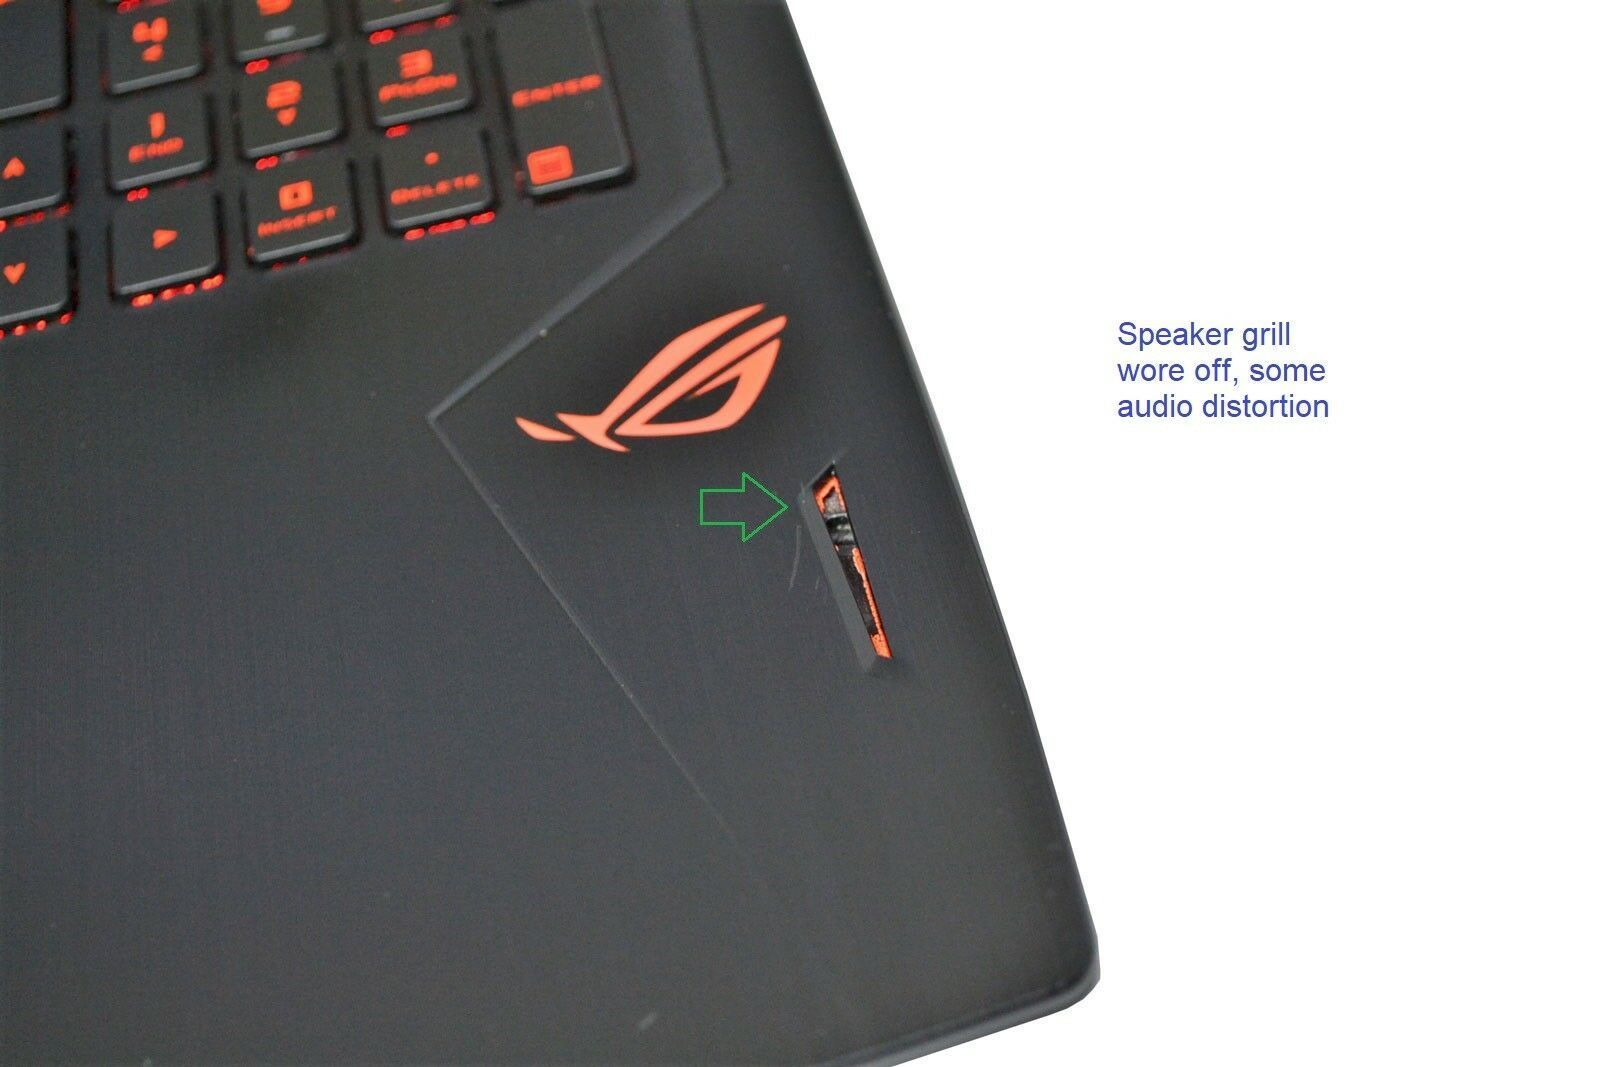 ASUS ROG GL502VM Gaming Laptop: GTX 1060, Core i5-7300HQ, GSYNC (speakers issue) - CruiseTech